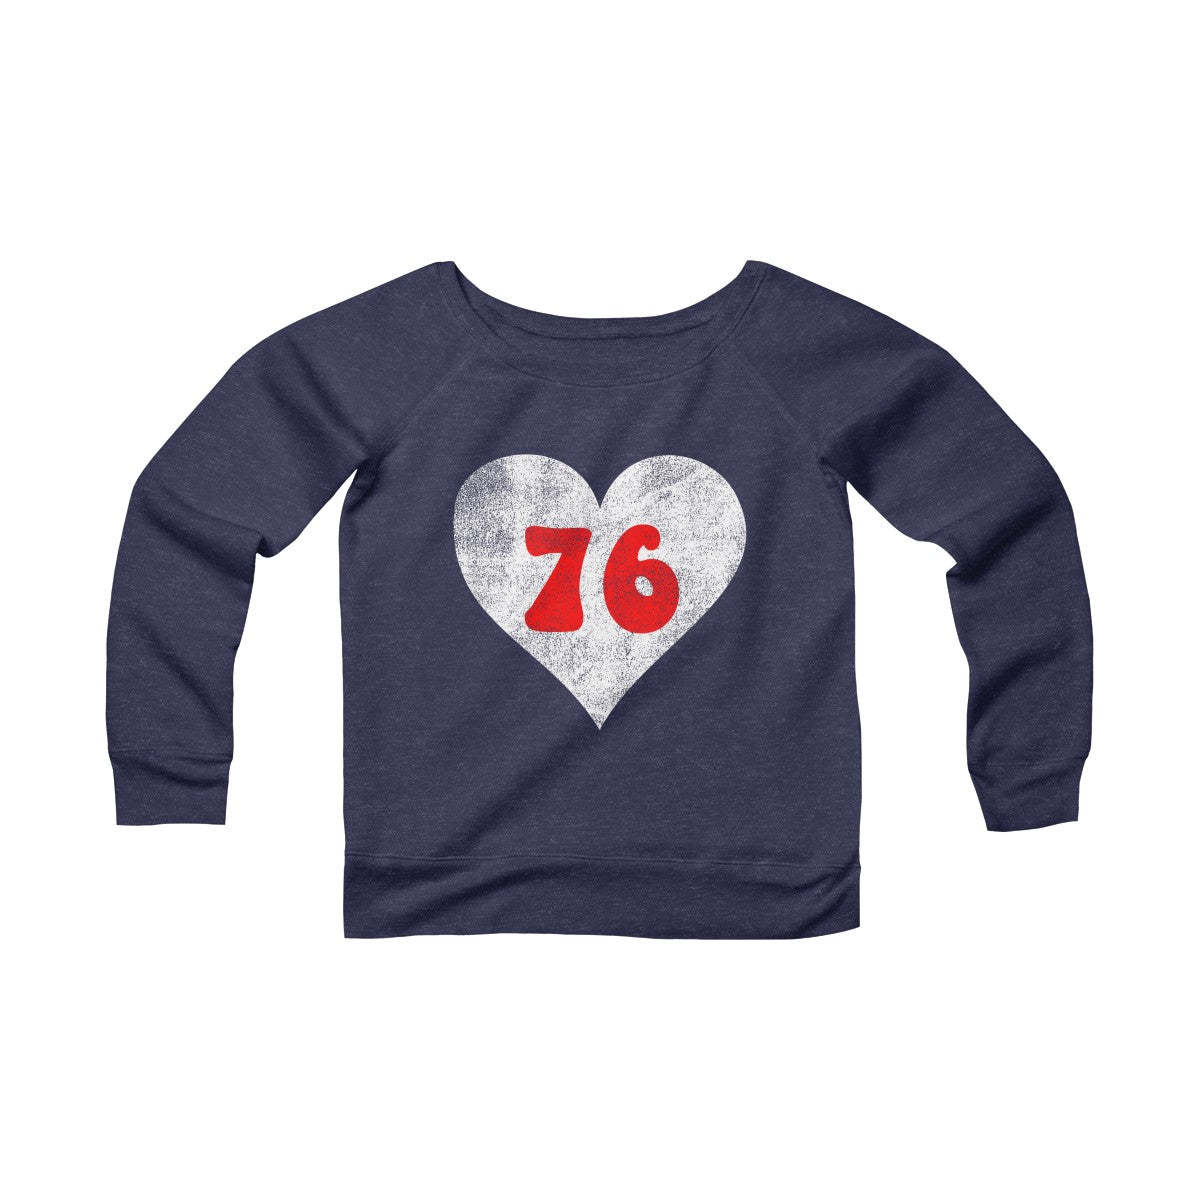 Retro Philly 76 Heart Women's Navy Sponge Fleece Wide Neck Sweatshirt